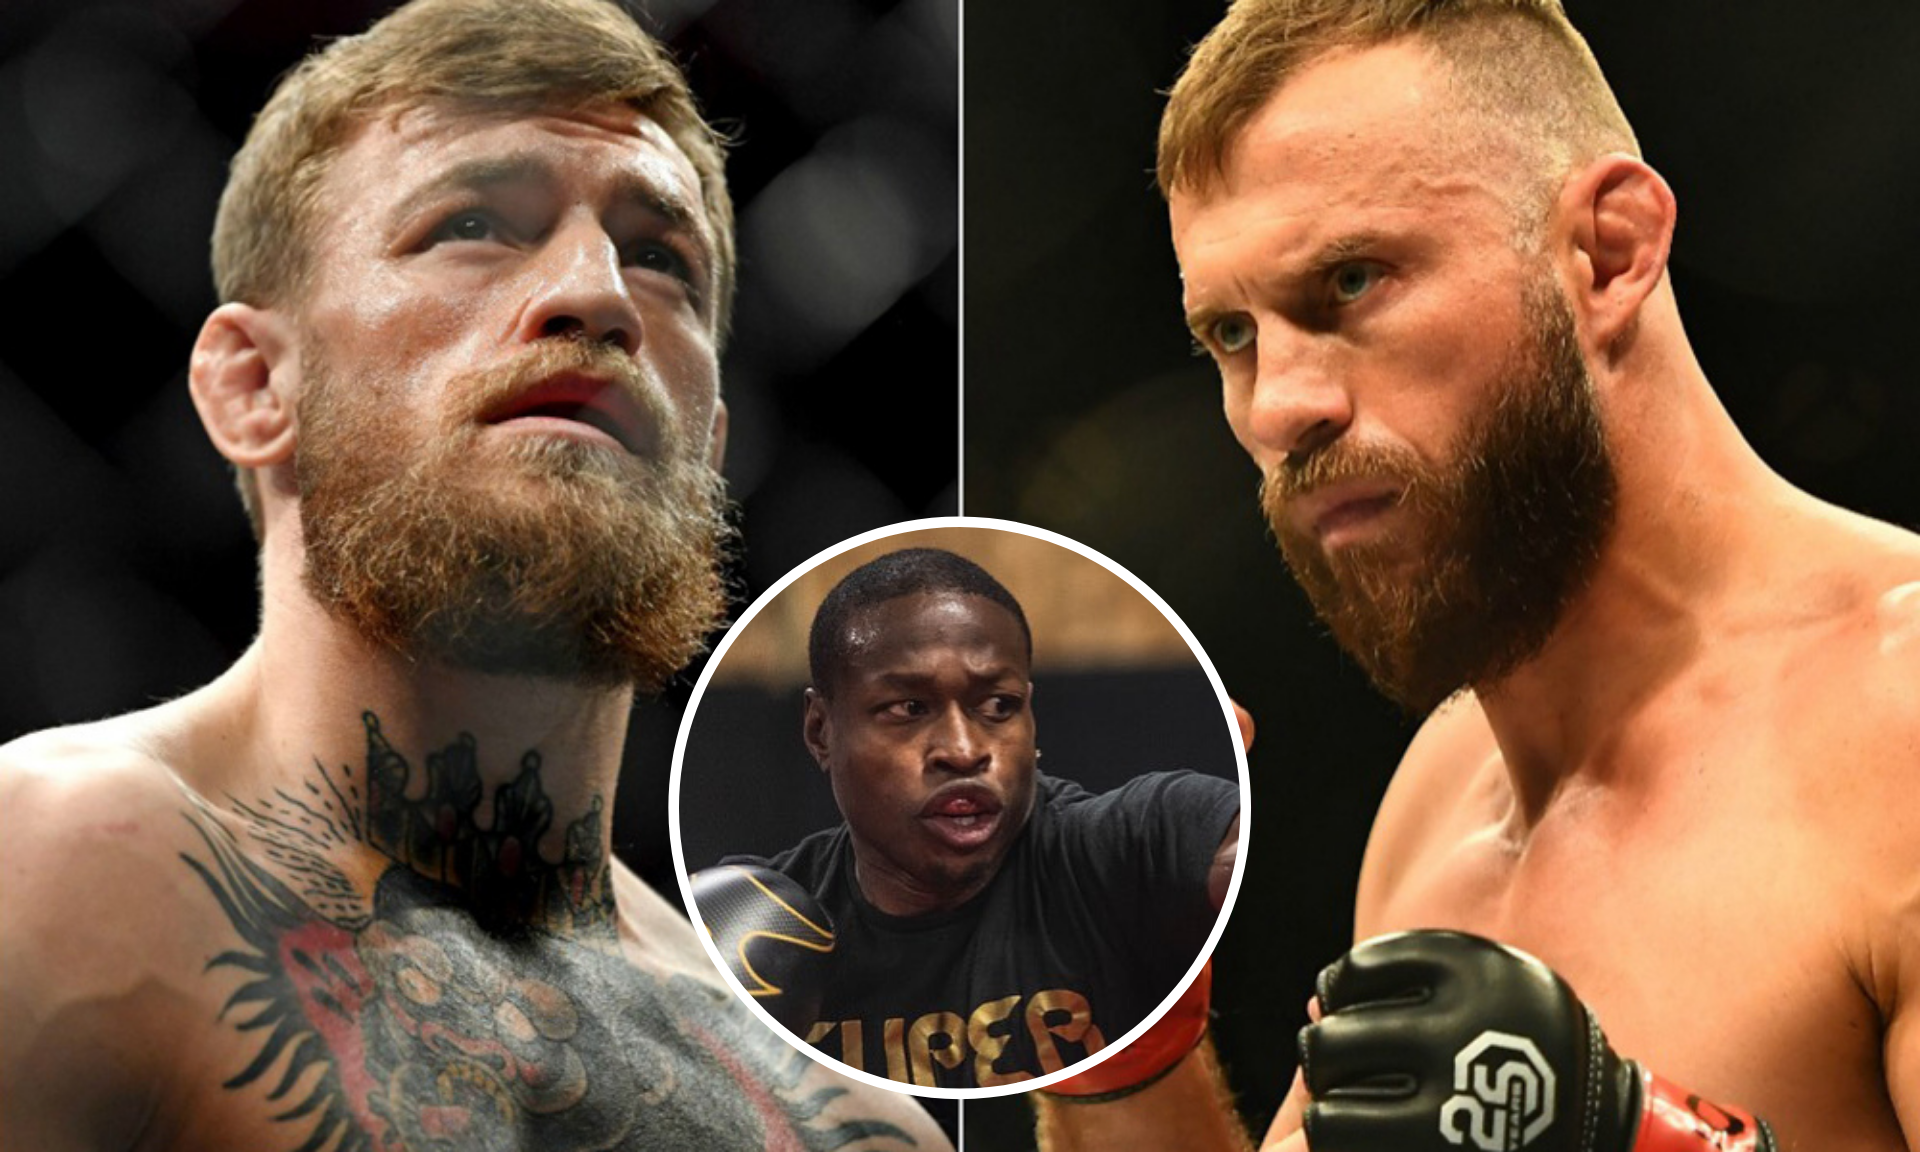 Donald Cerrone's coach on Conor McGregor: If we stay away from that left hand, it's going to be a short night! - Donald Cerrone's coach